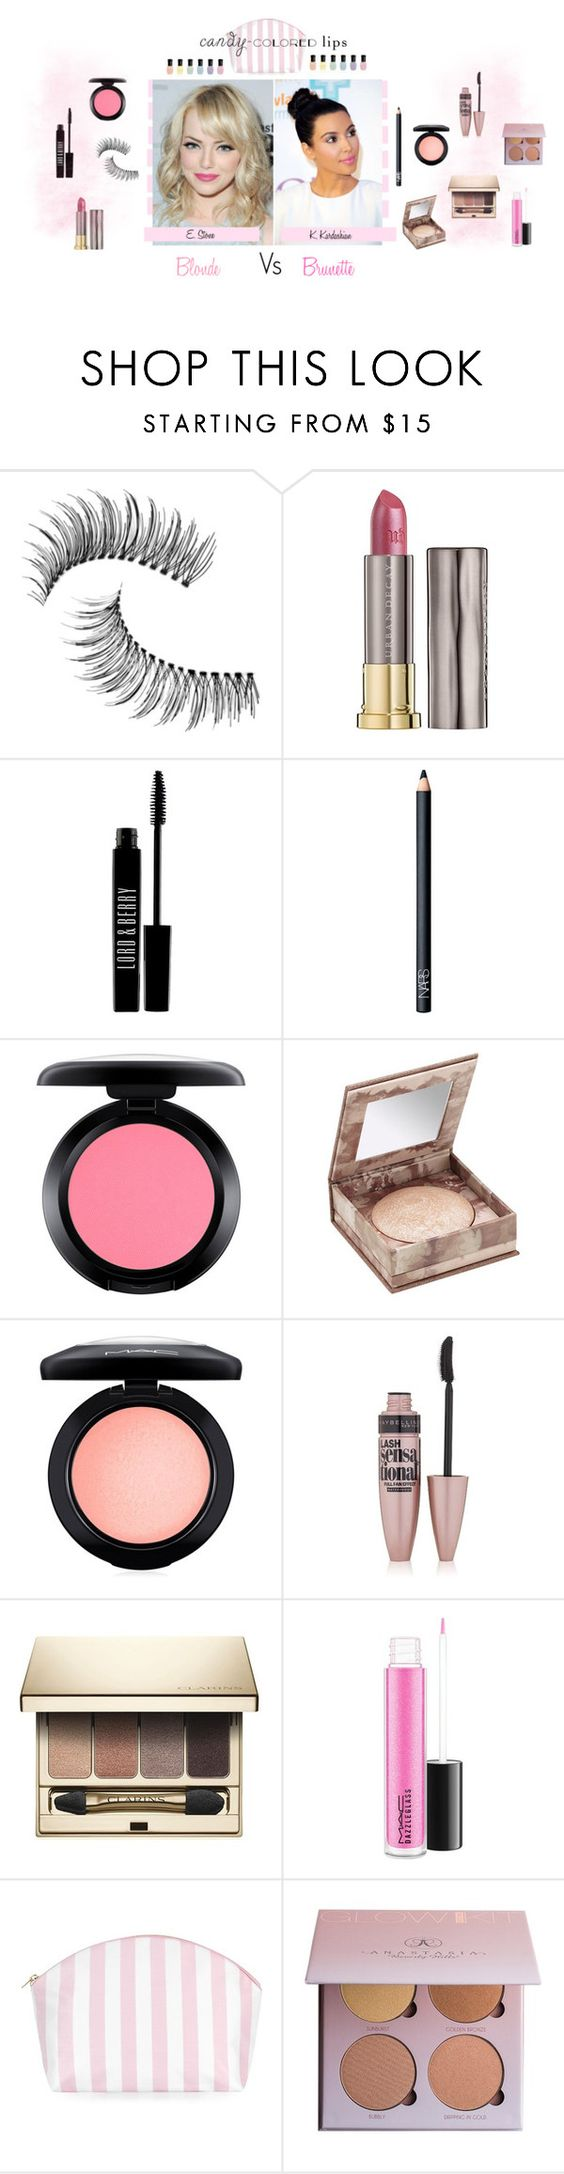 """""""Candy colored lips"""" by rosannaradicci ❤ liked on Polyvore featuring beauty, Rossetto, Trish McEvoy, Urban Decay, Lord & Berry, NARS Cosmetics, MAC Cosmetics, Maybelline, Clarins and Anastasia Beverly Hills"""